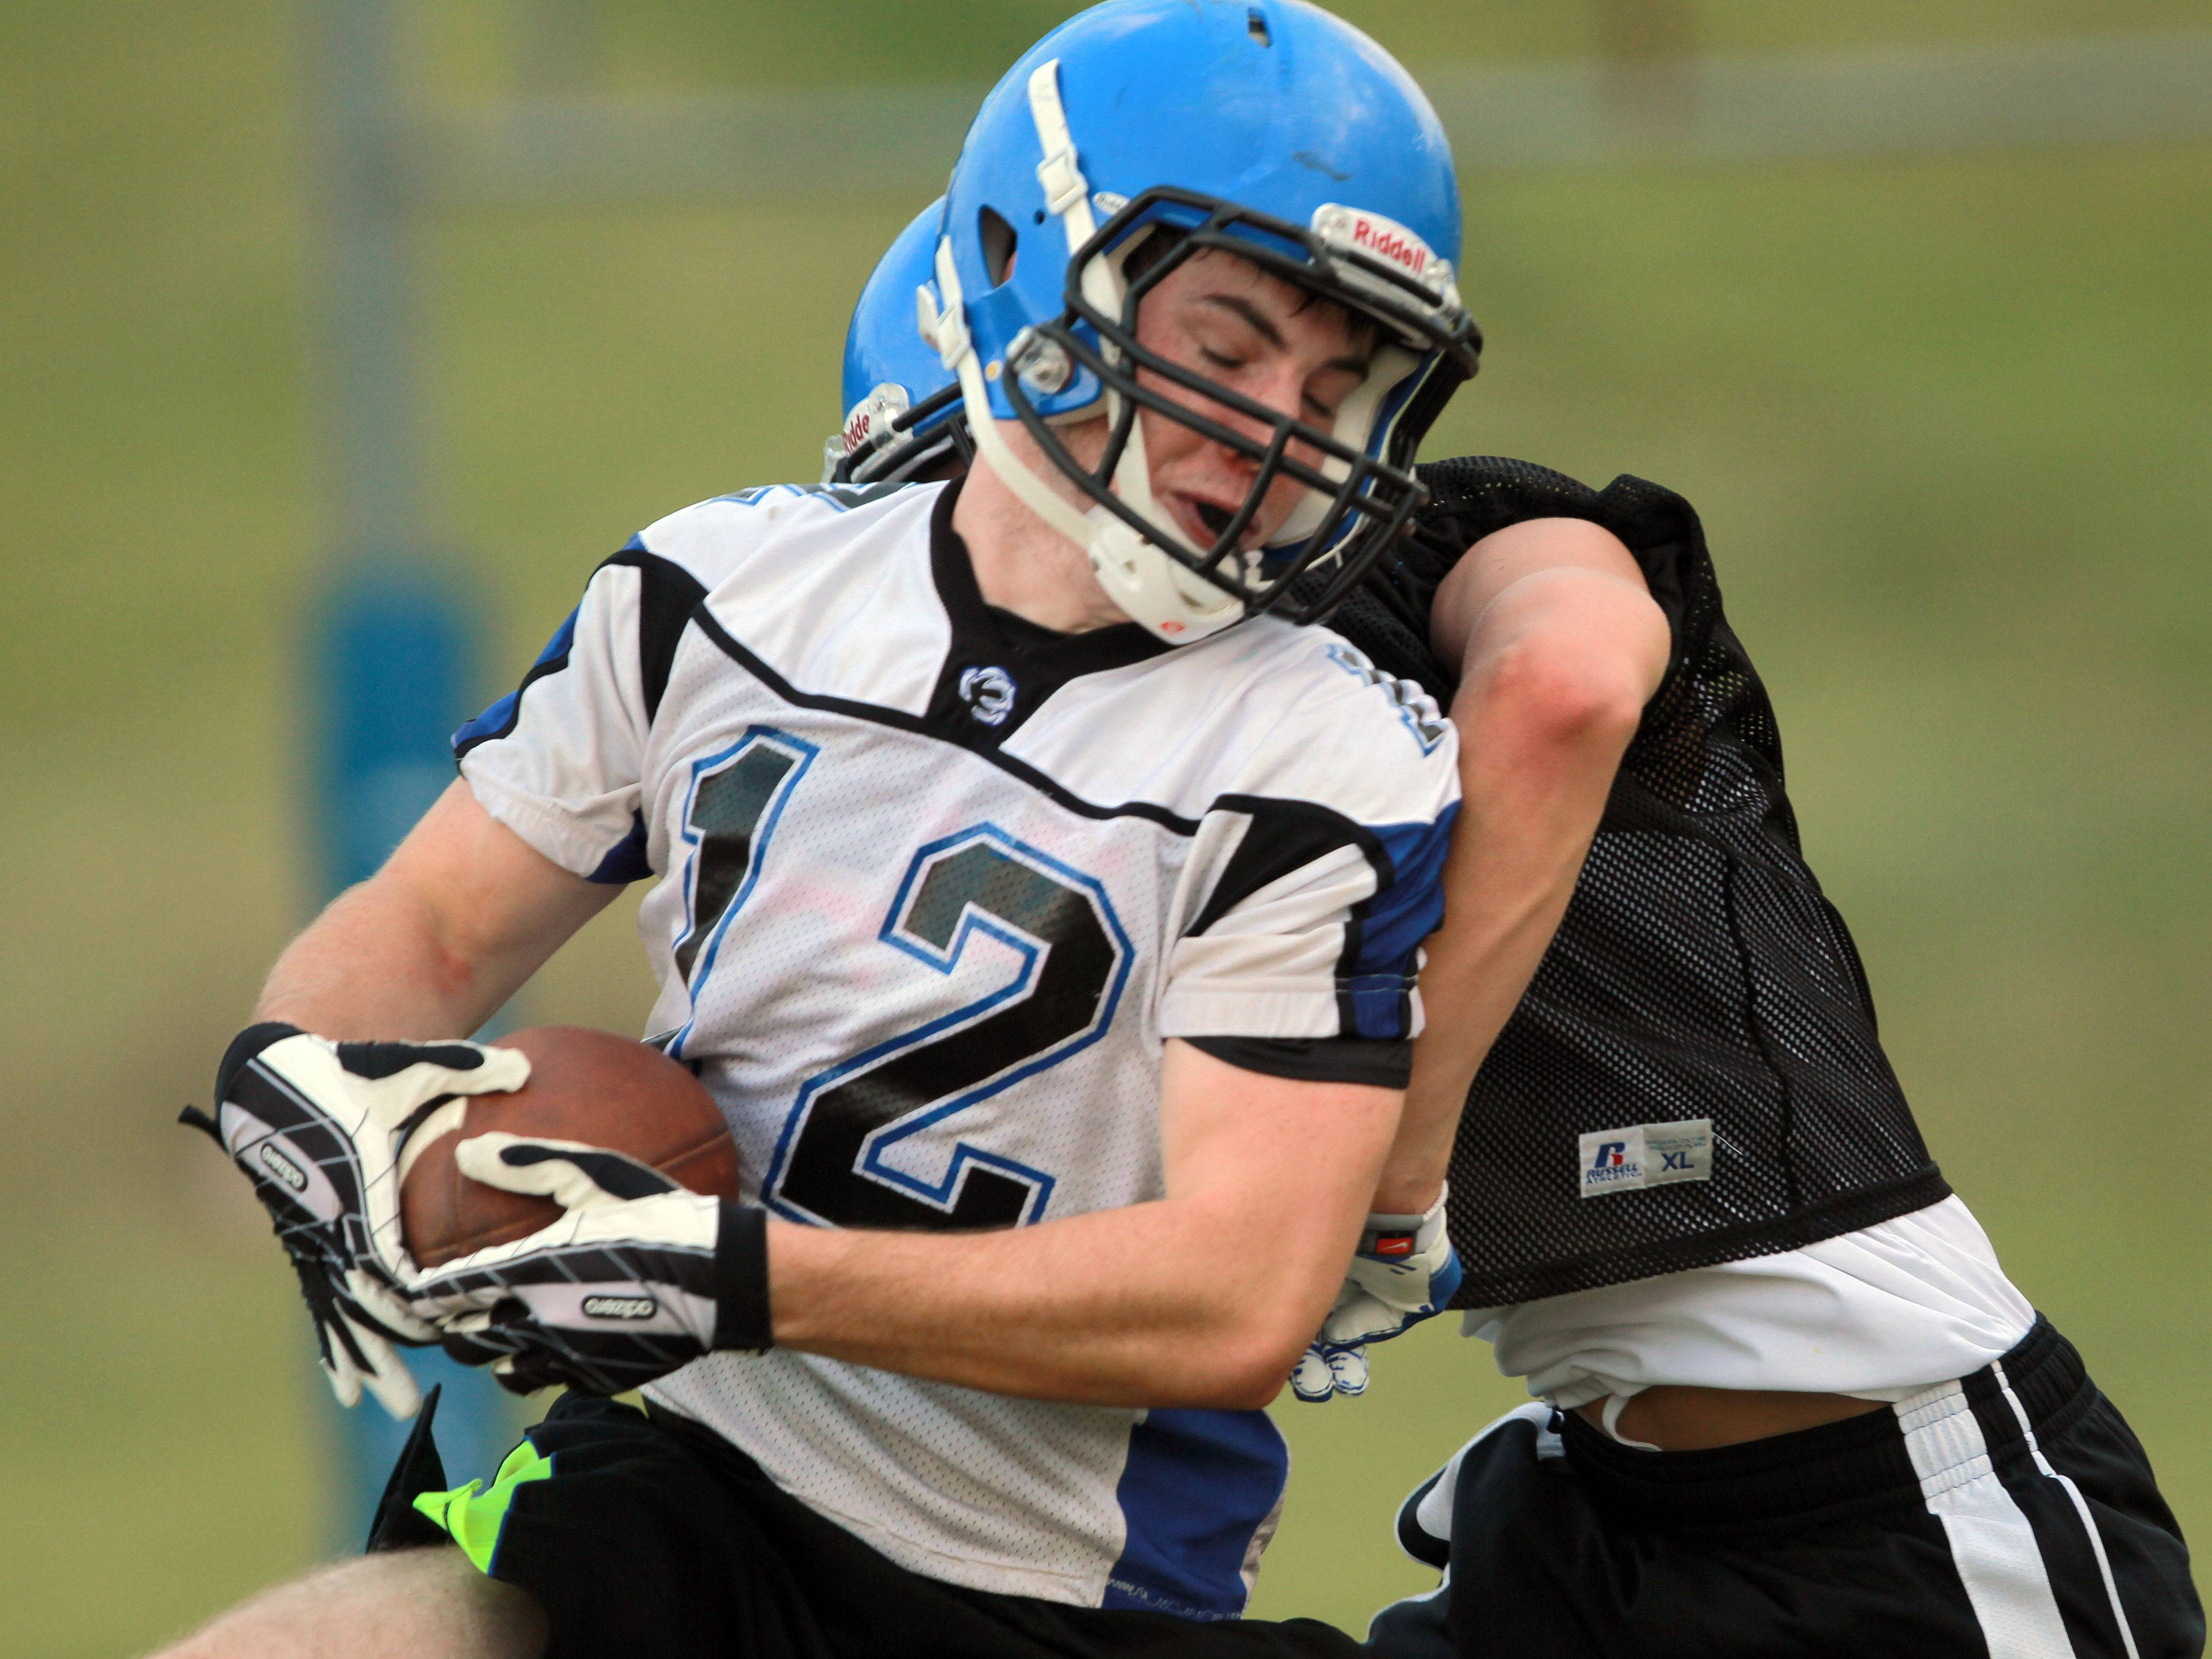 Andy Hughes makes a catch during football practice Monday at Lake Zurich High School.